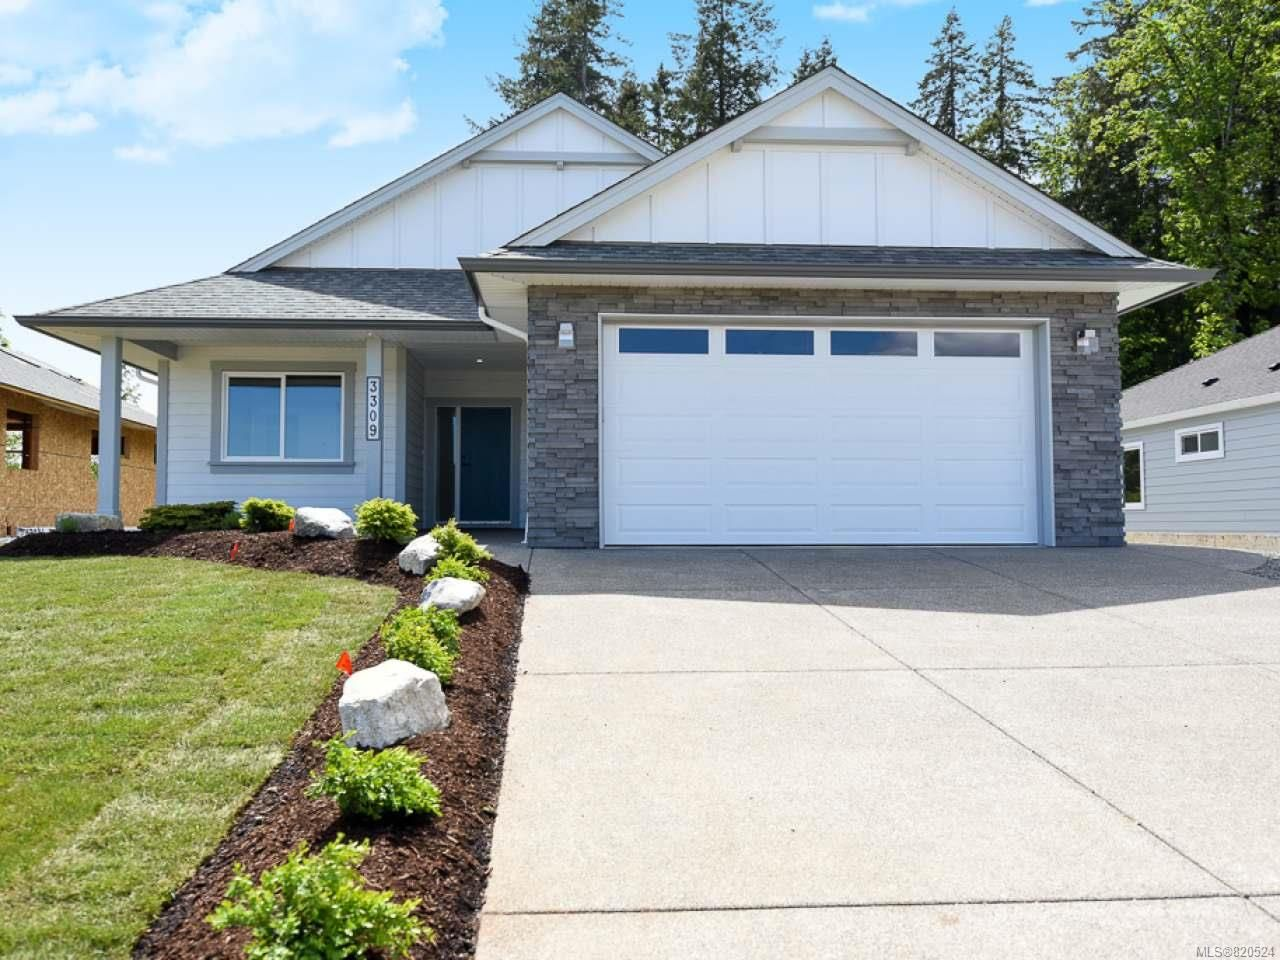 Main Photo: 3309 Harbourview Blvd in COURTENAY: CV Courtenay City House for sale (Comox Valley)  : MLS®# 820524